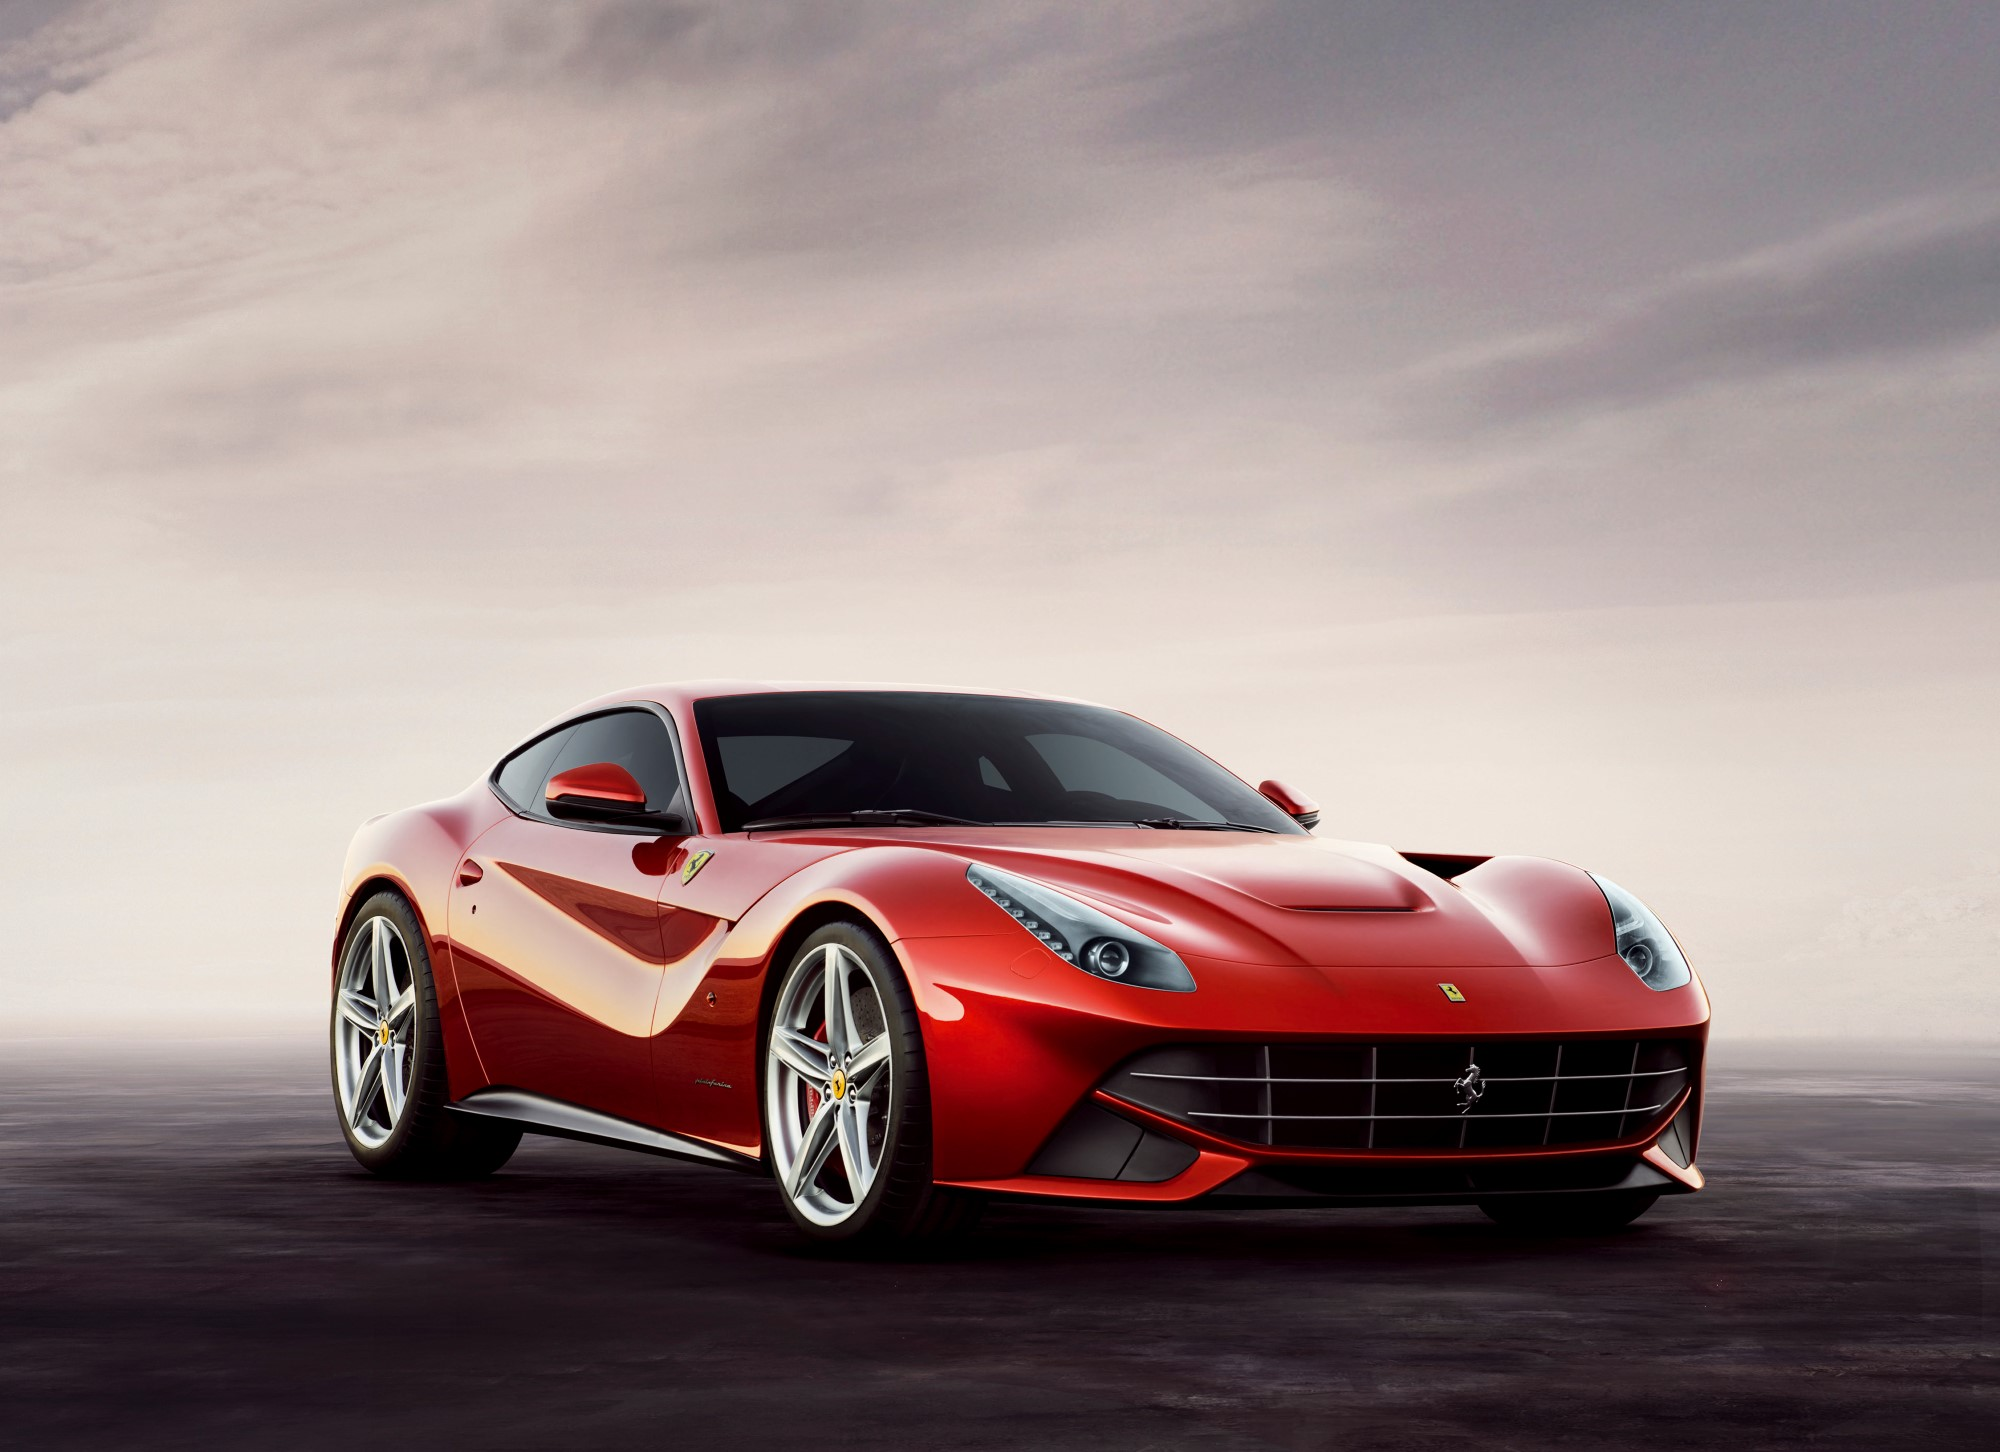 2015 Ferrari F12 Berlinetta Summary Review The Car Connection